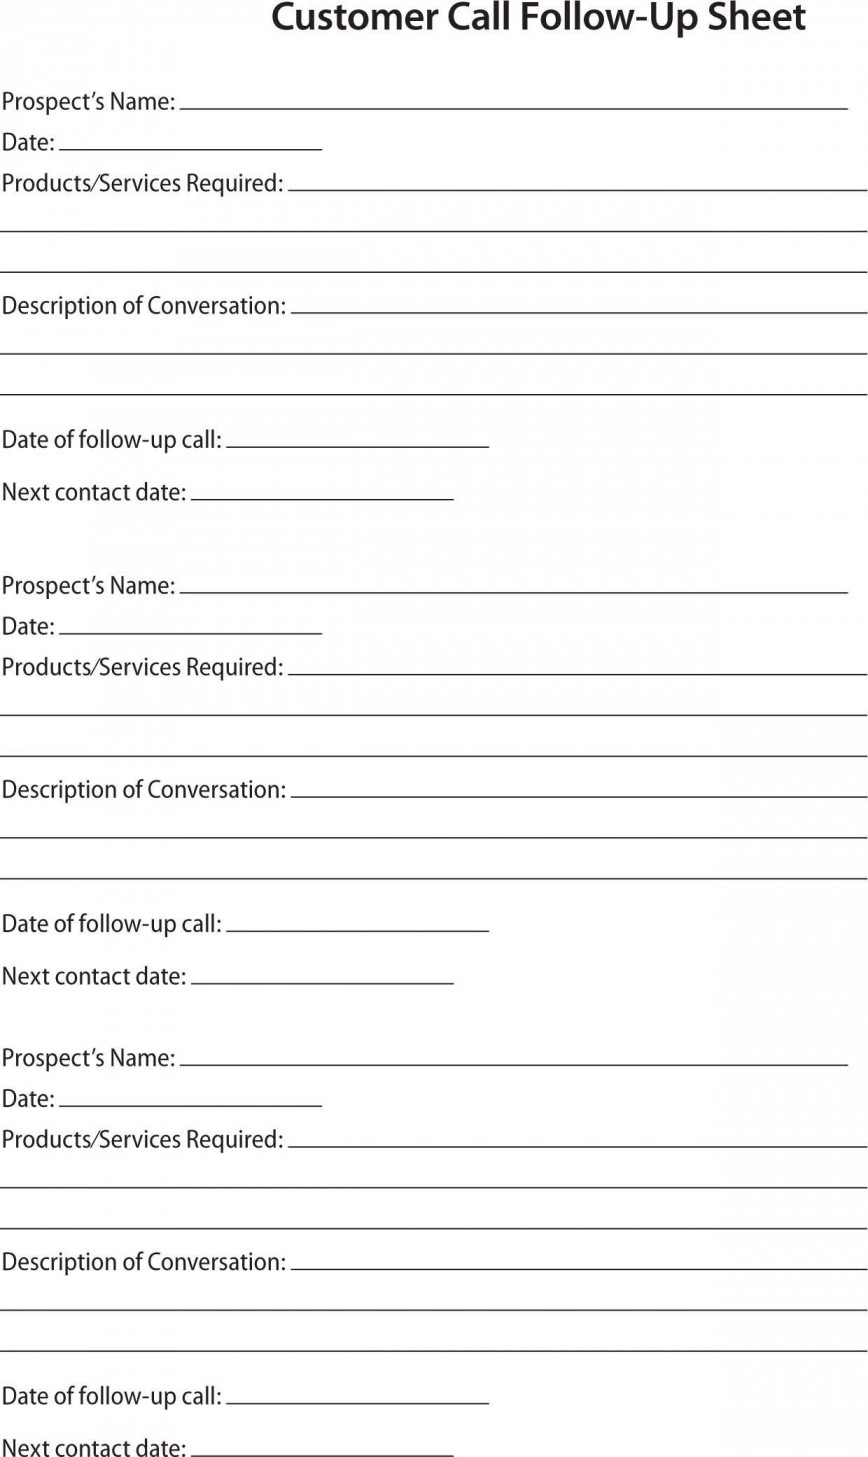 005 Exceptional Client Information Form Template Excel Inspiration 868